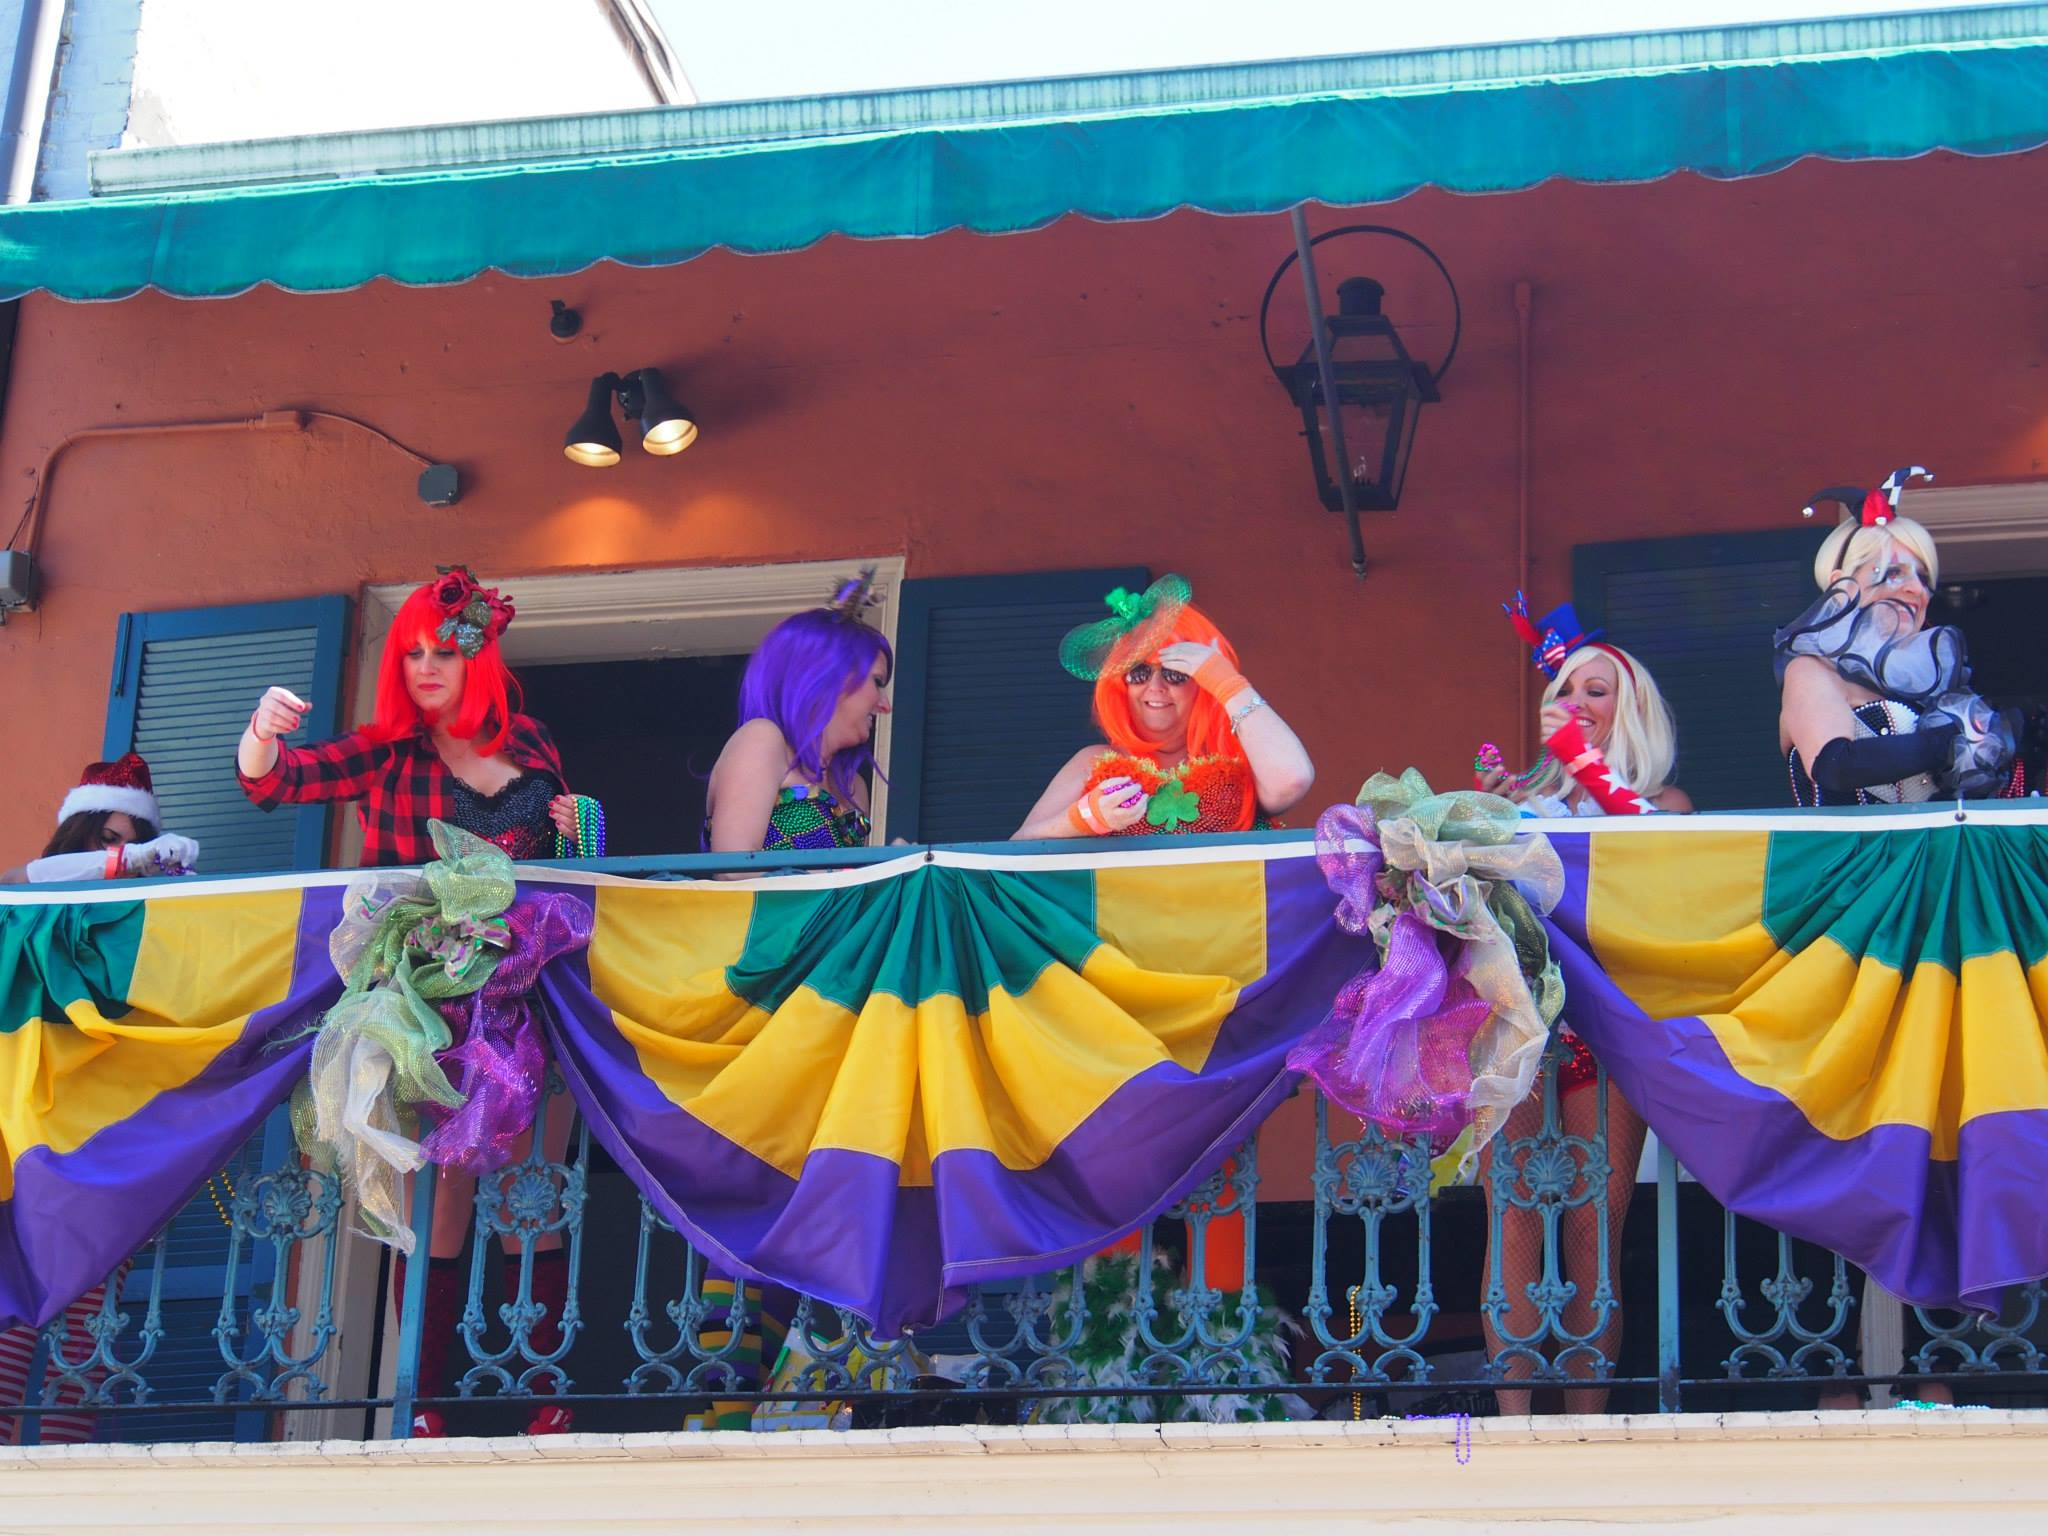 french-quarter-new-orleans-mardi-gras-1